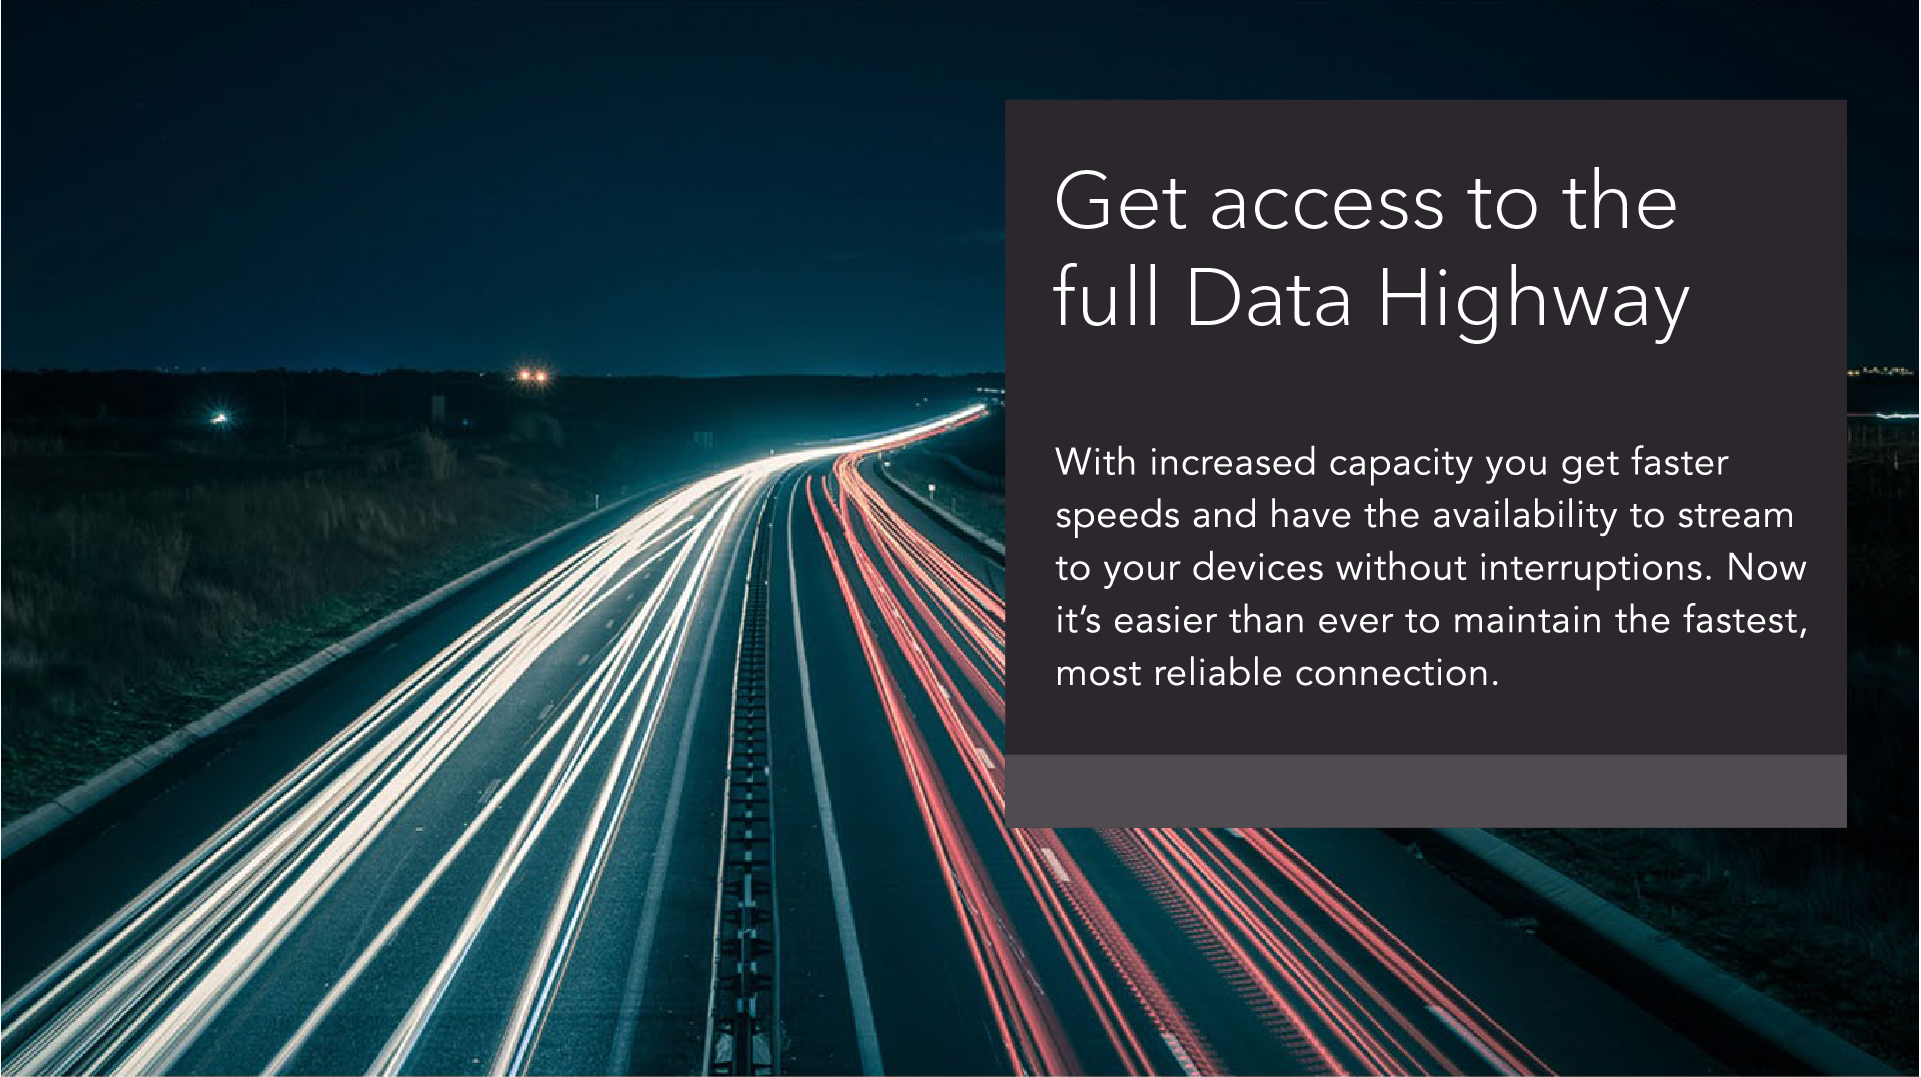 Orbi AX Mesh lets you get access to a wider and faster data-highway for all your connected devices